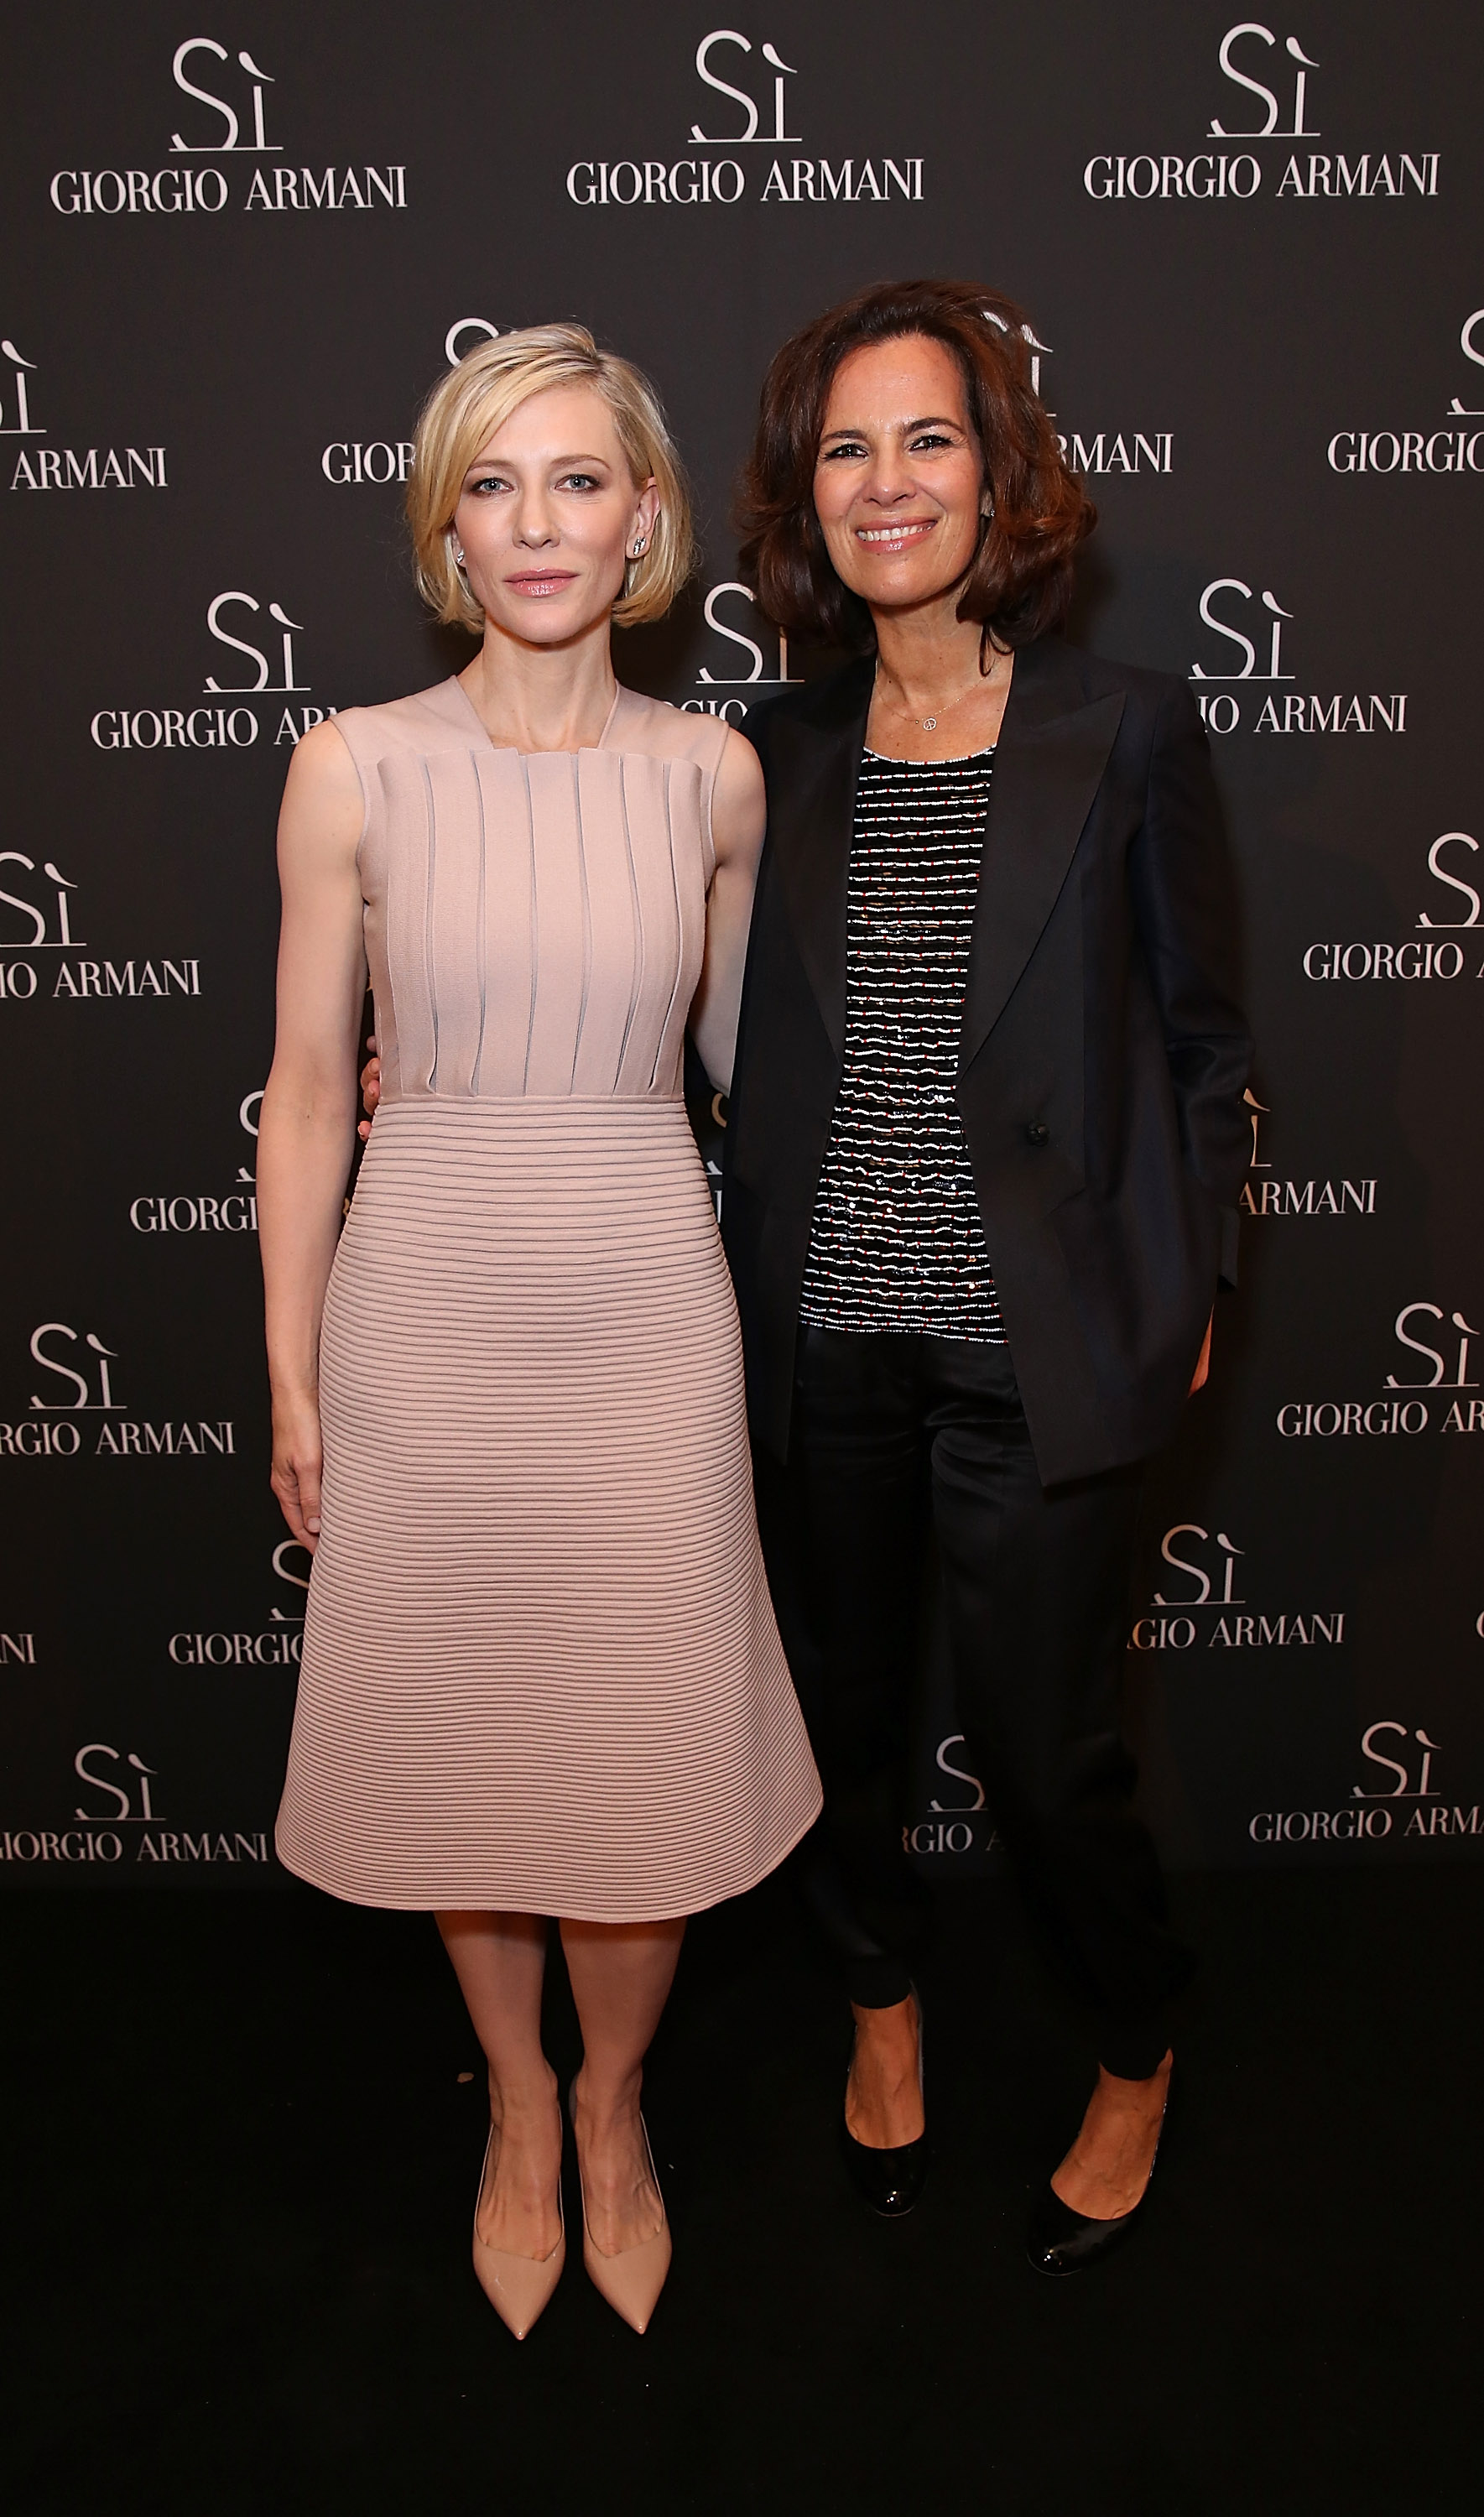 Attends Giorgio Armani Parfums Si Gathering Day on May 24, 2016 in London, England.